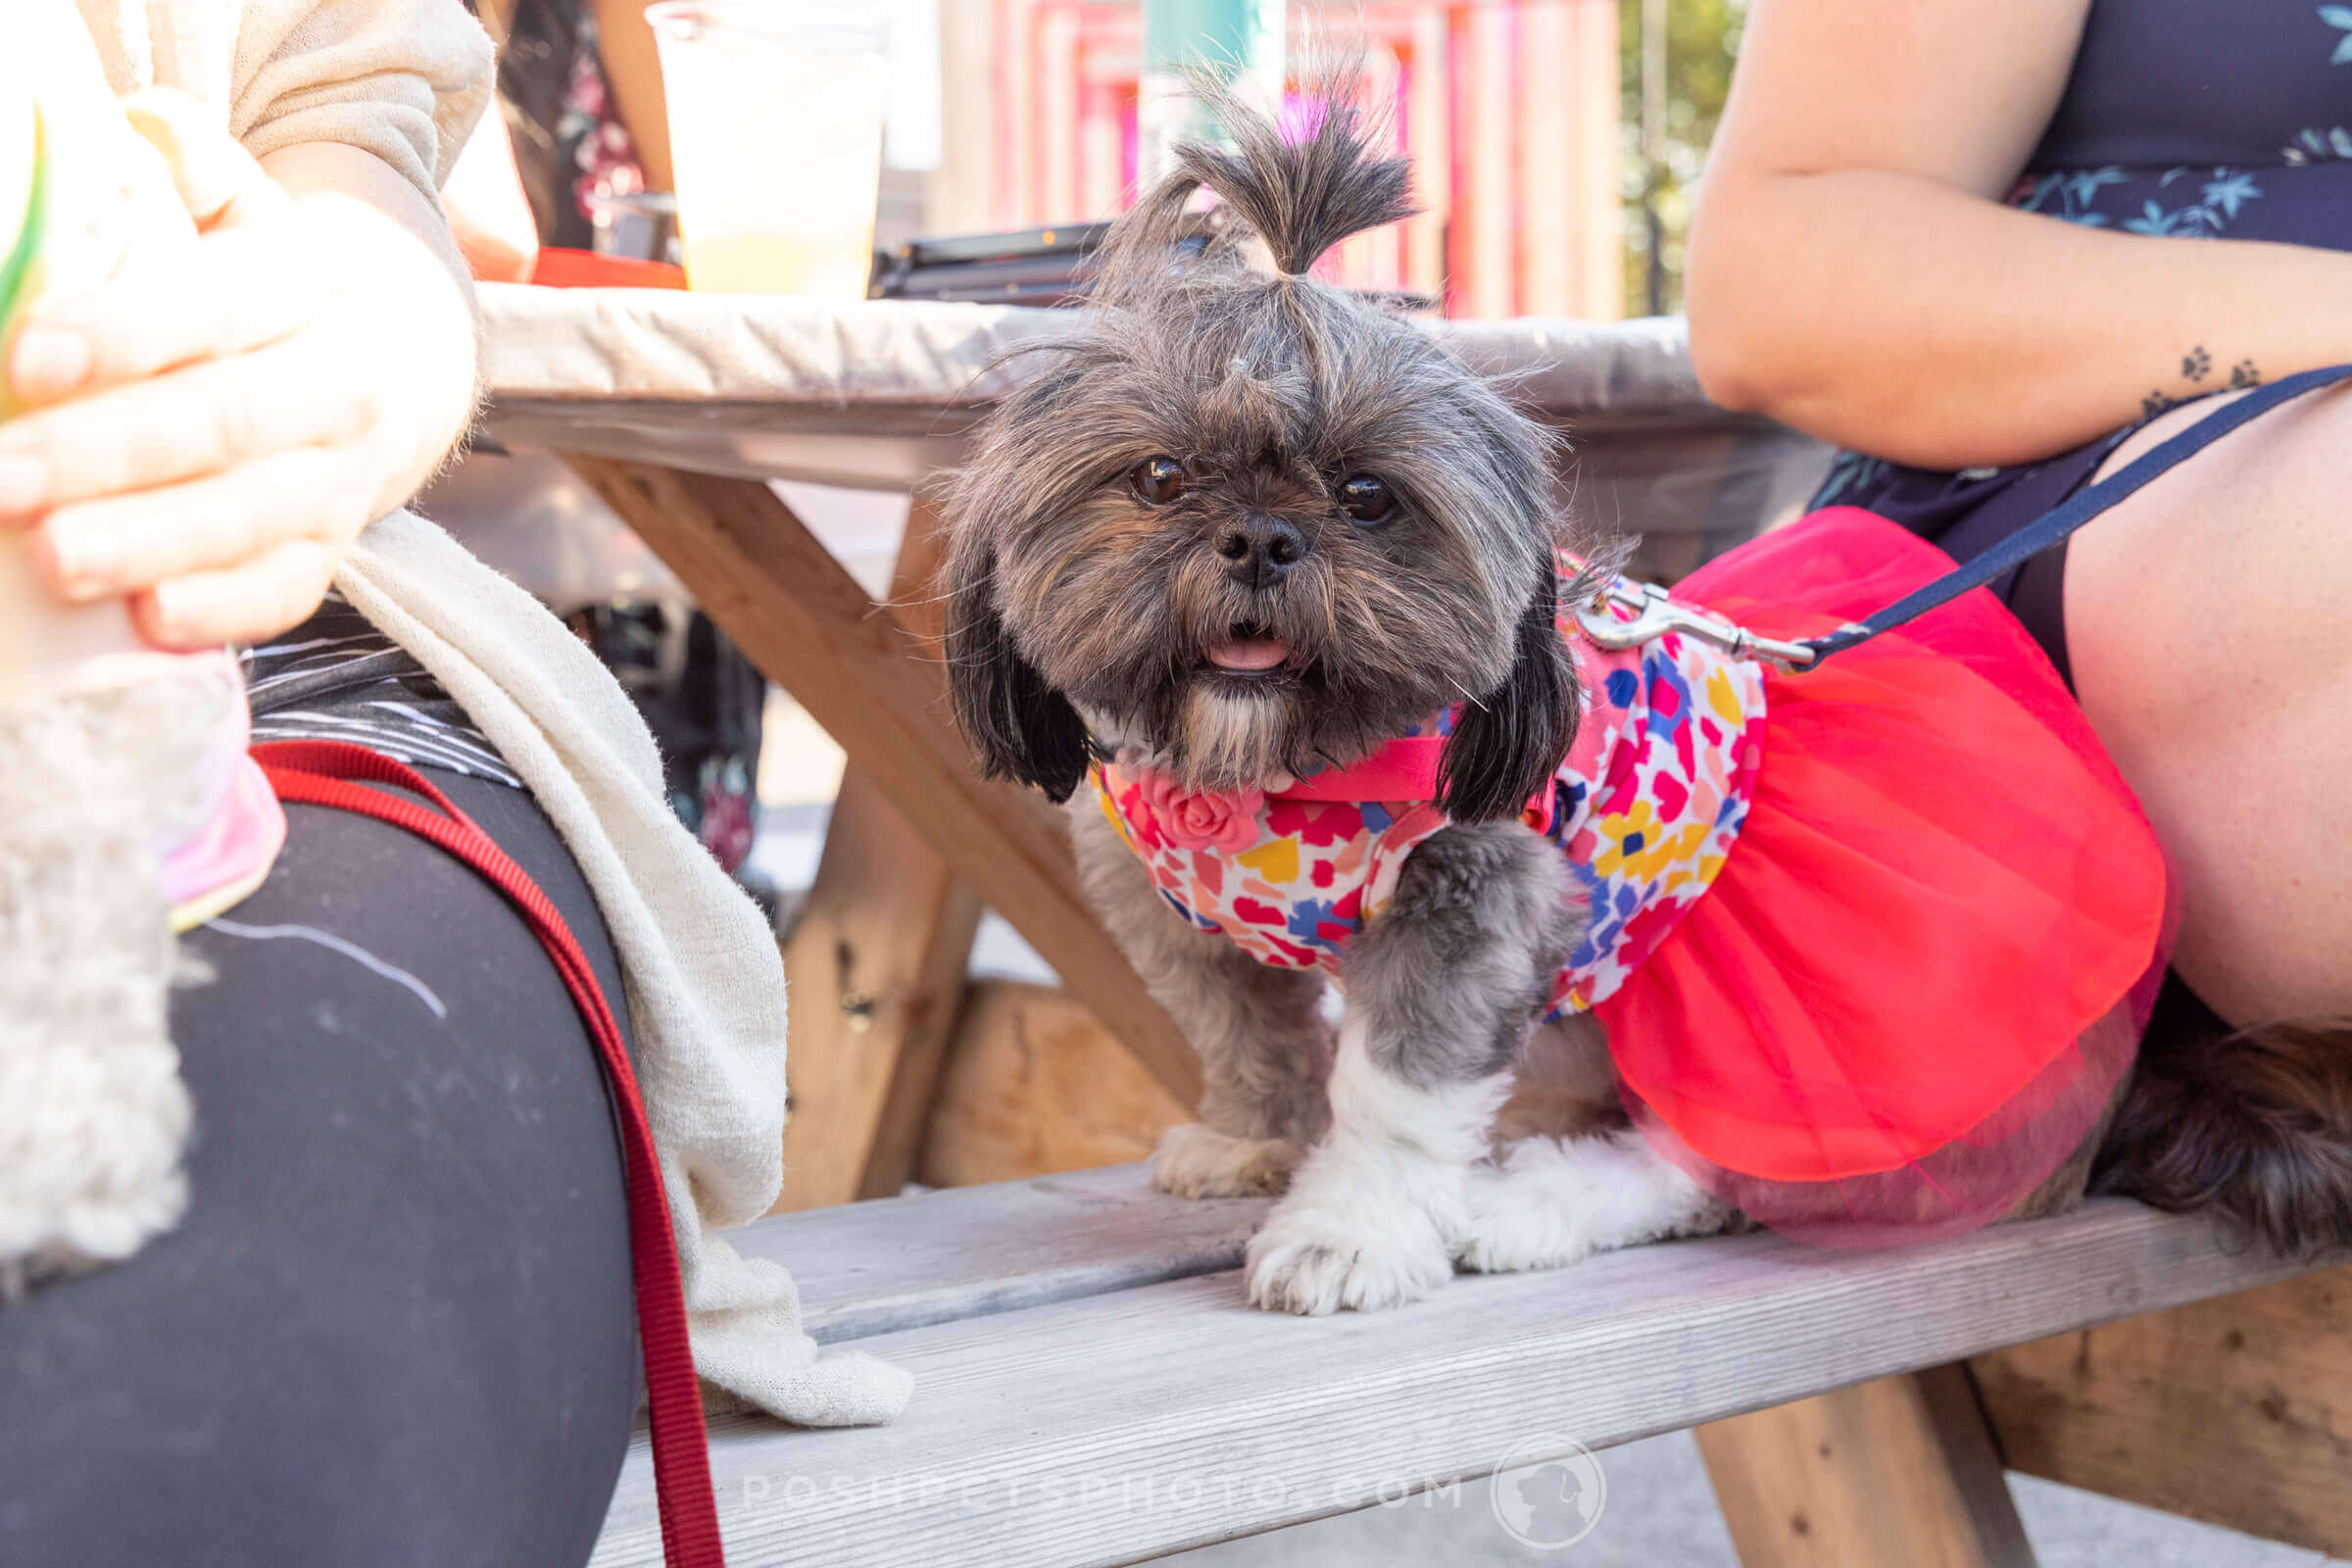 shih tzu dog in fancy red dress